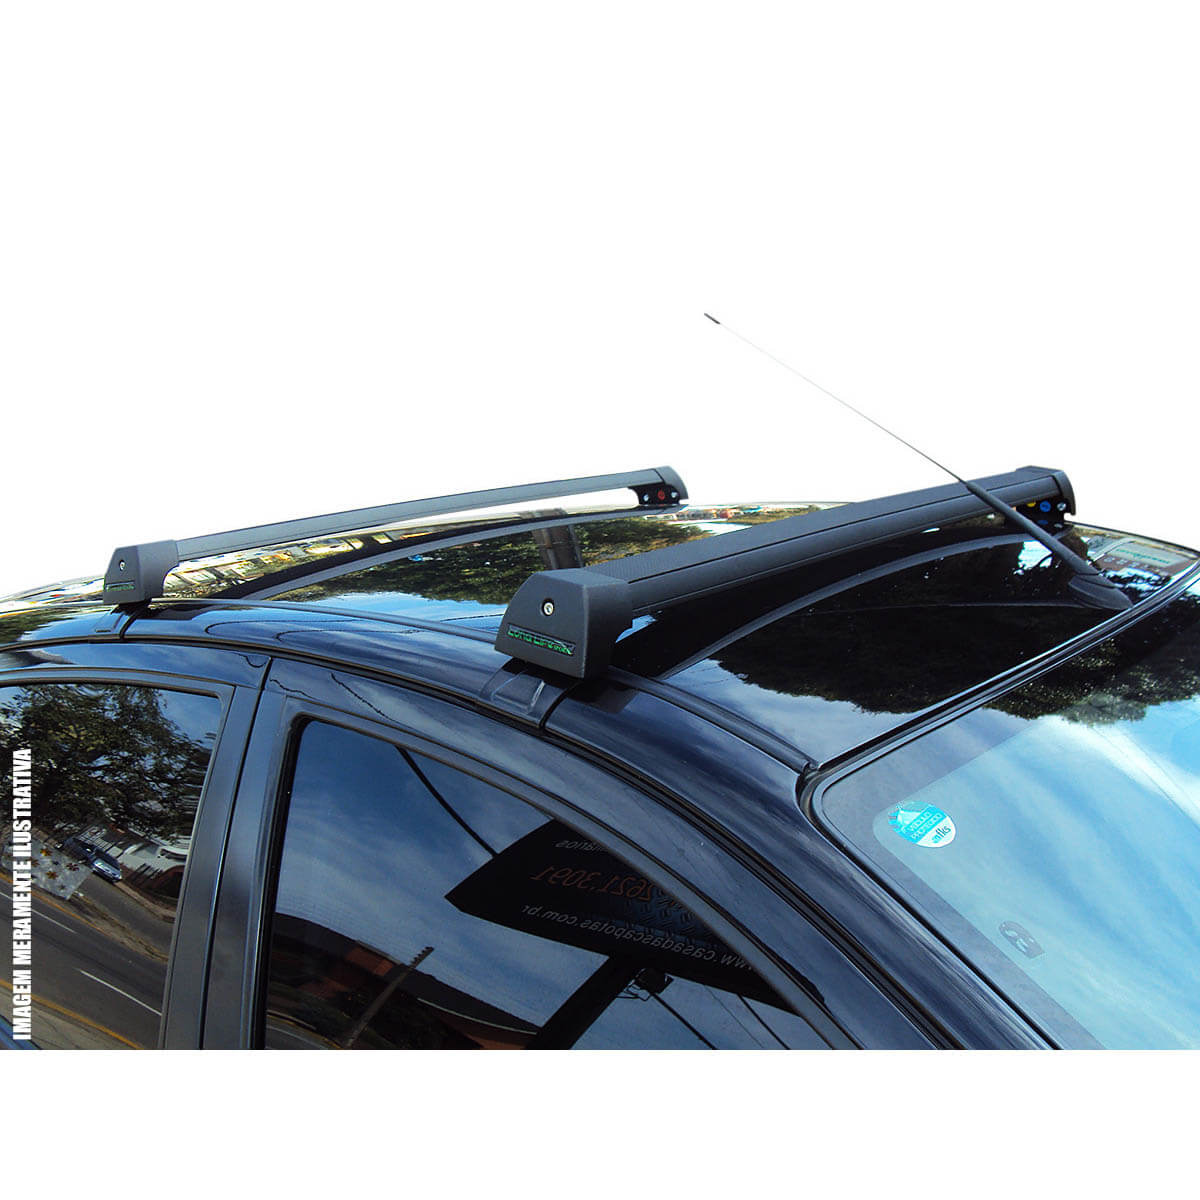 Rack de teto Long Life Sports preto Fit 2015 a 2021